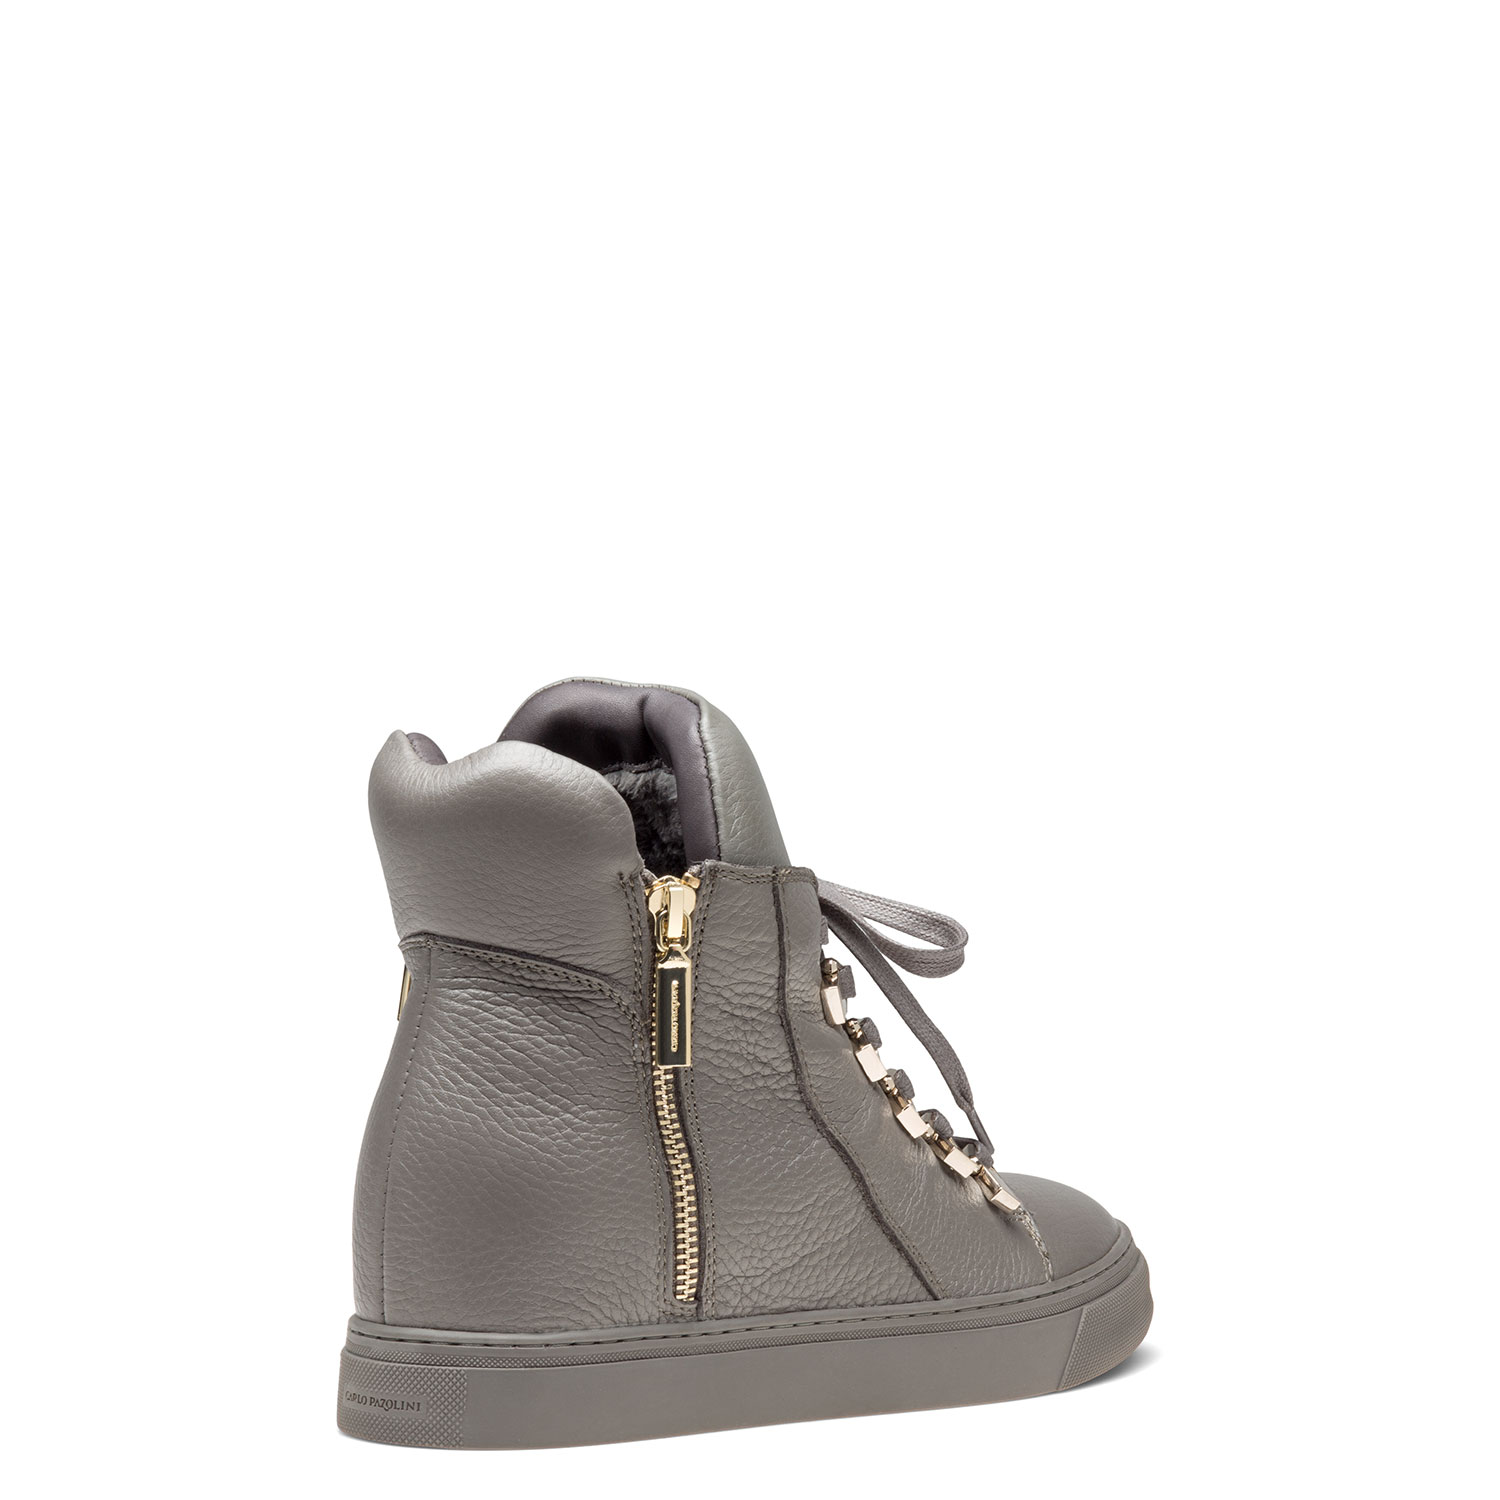 Women's cold weather ankle boots CARLO PAZOLINI JH-ZAF1-10